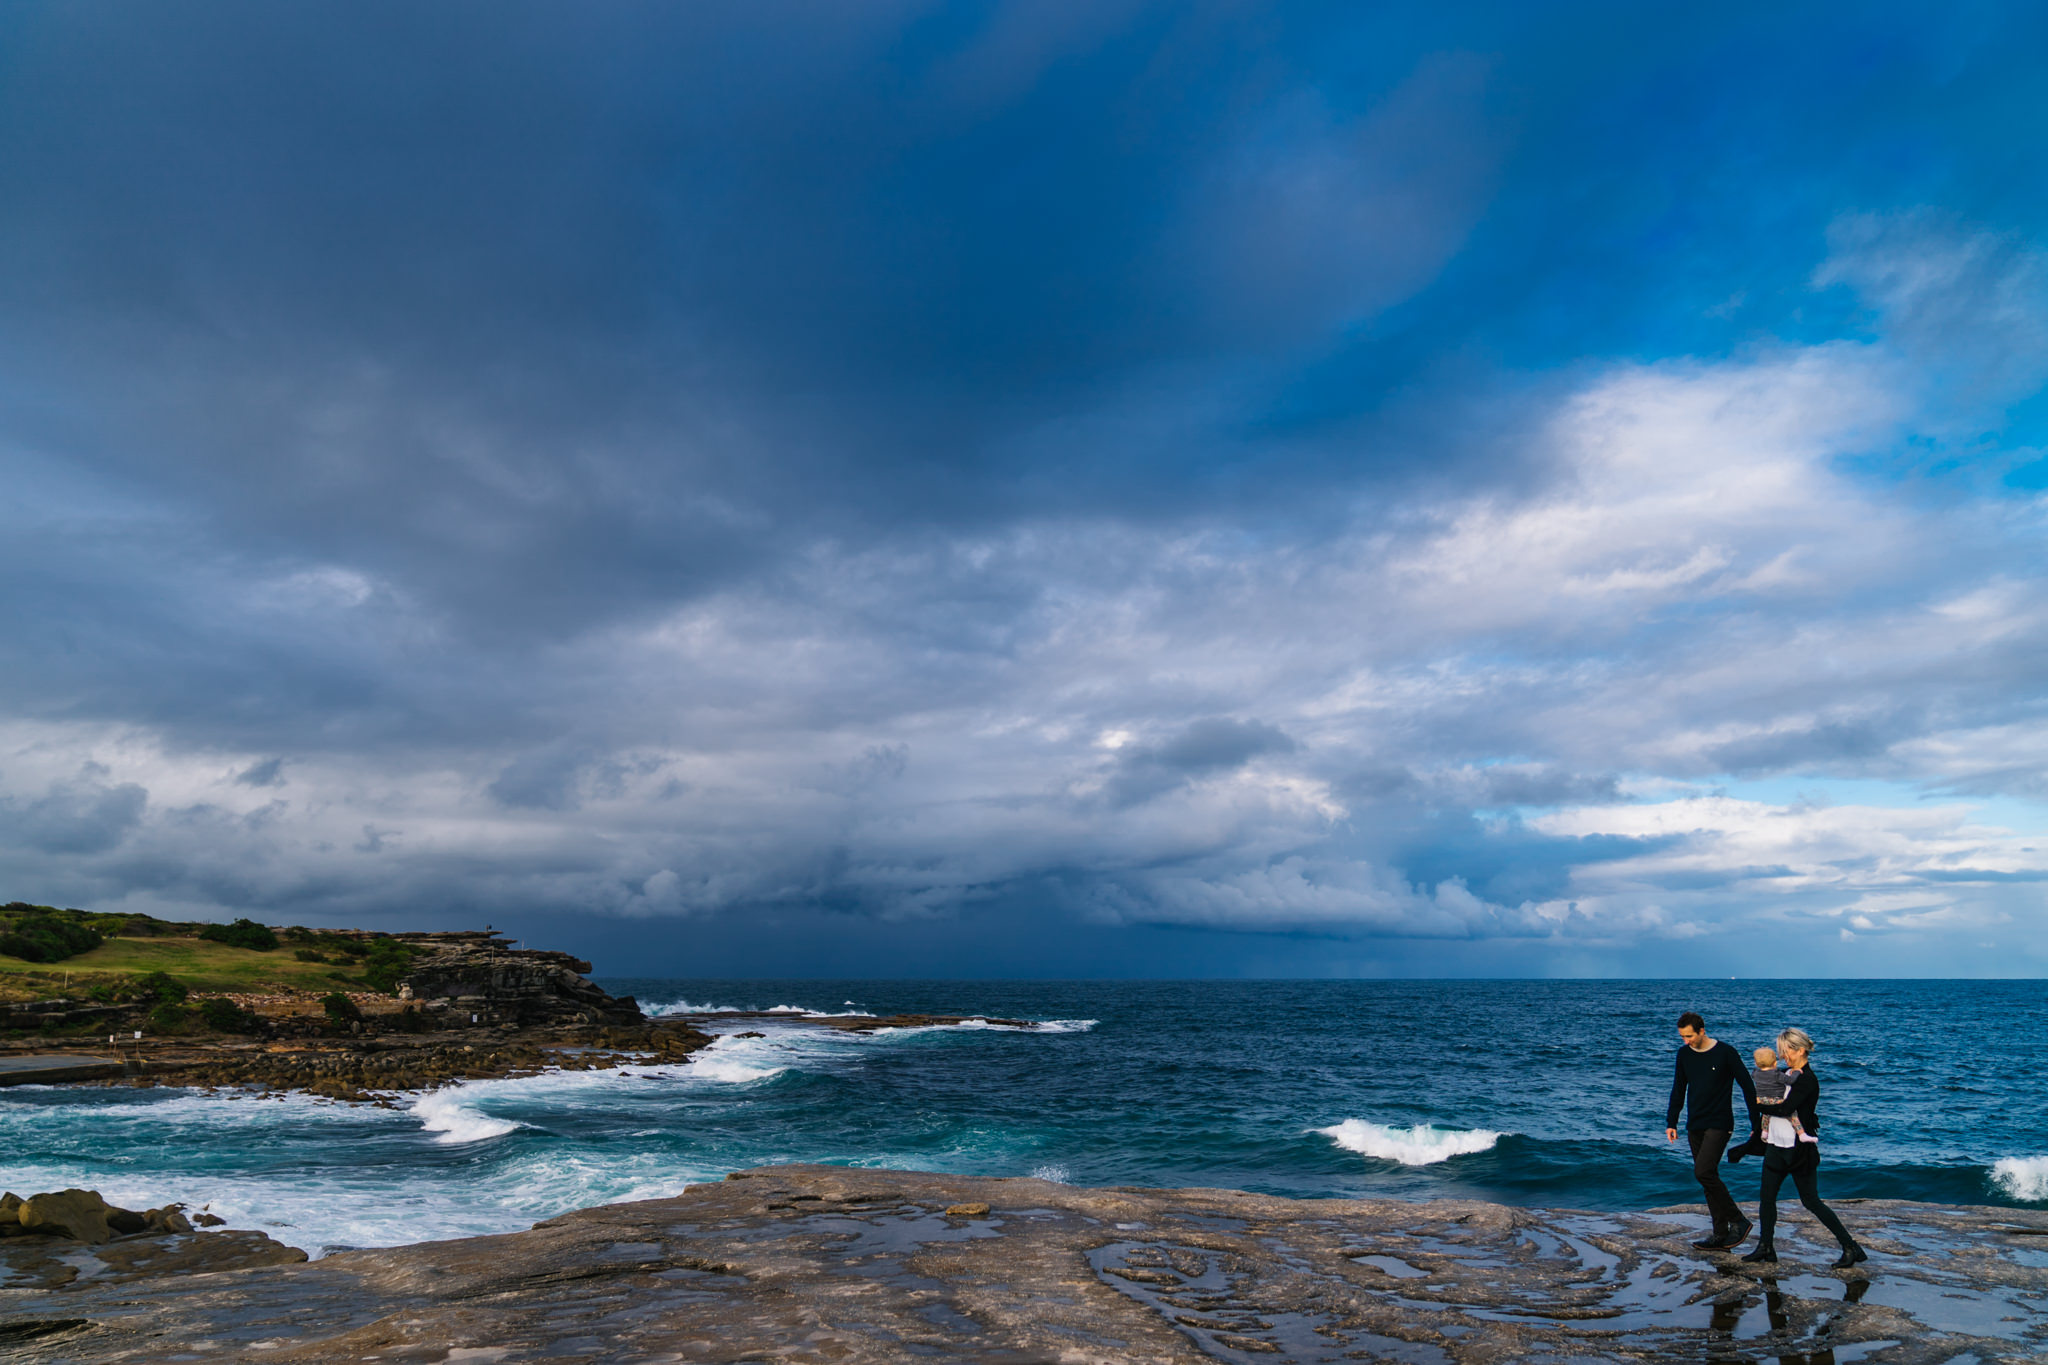 Stormy skies over Coogee beach as family walks along the rocks